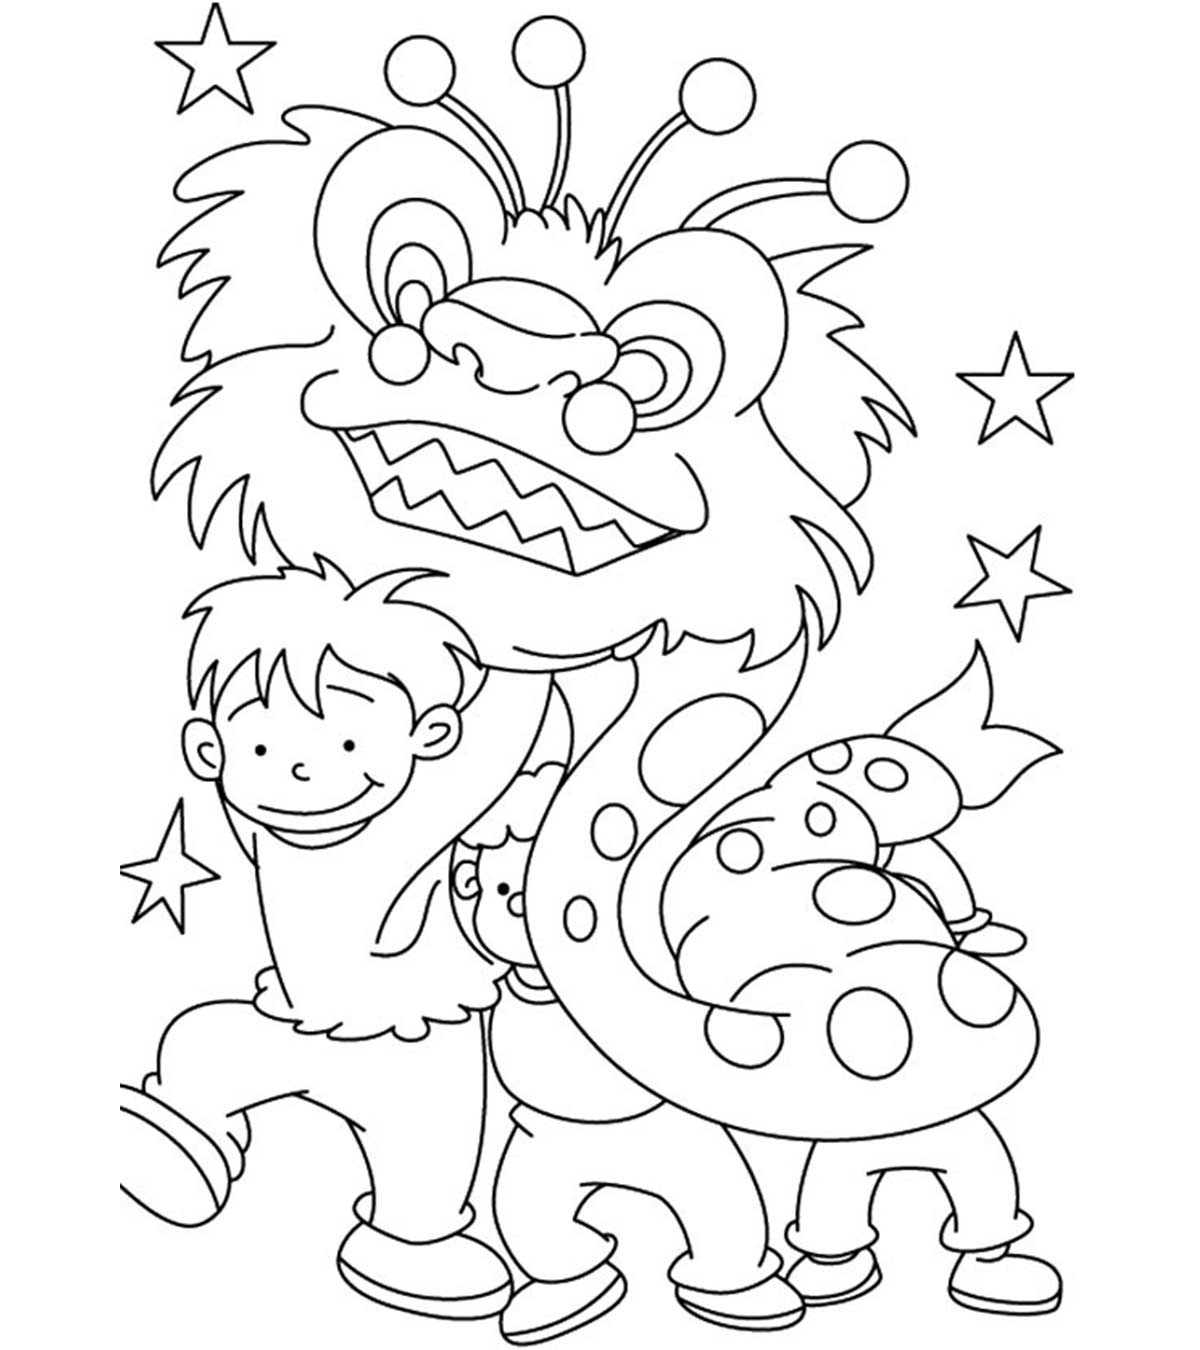 - Top 15 Chinese New Year Coloring Pages For Toddler